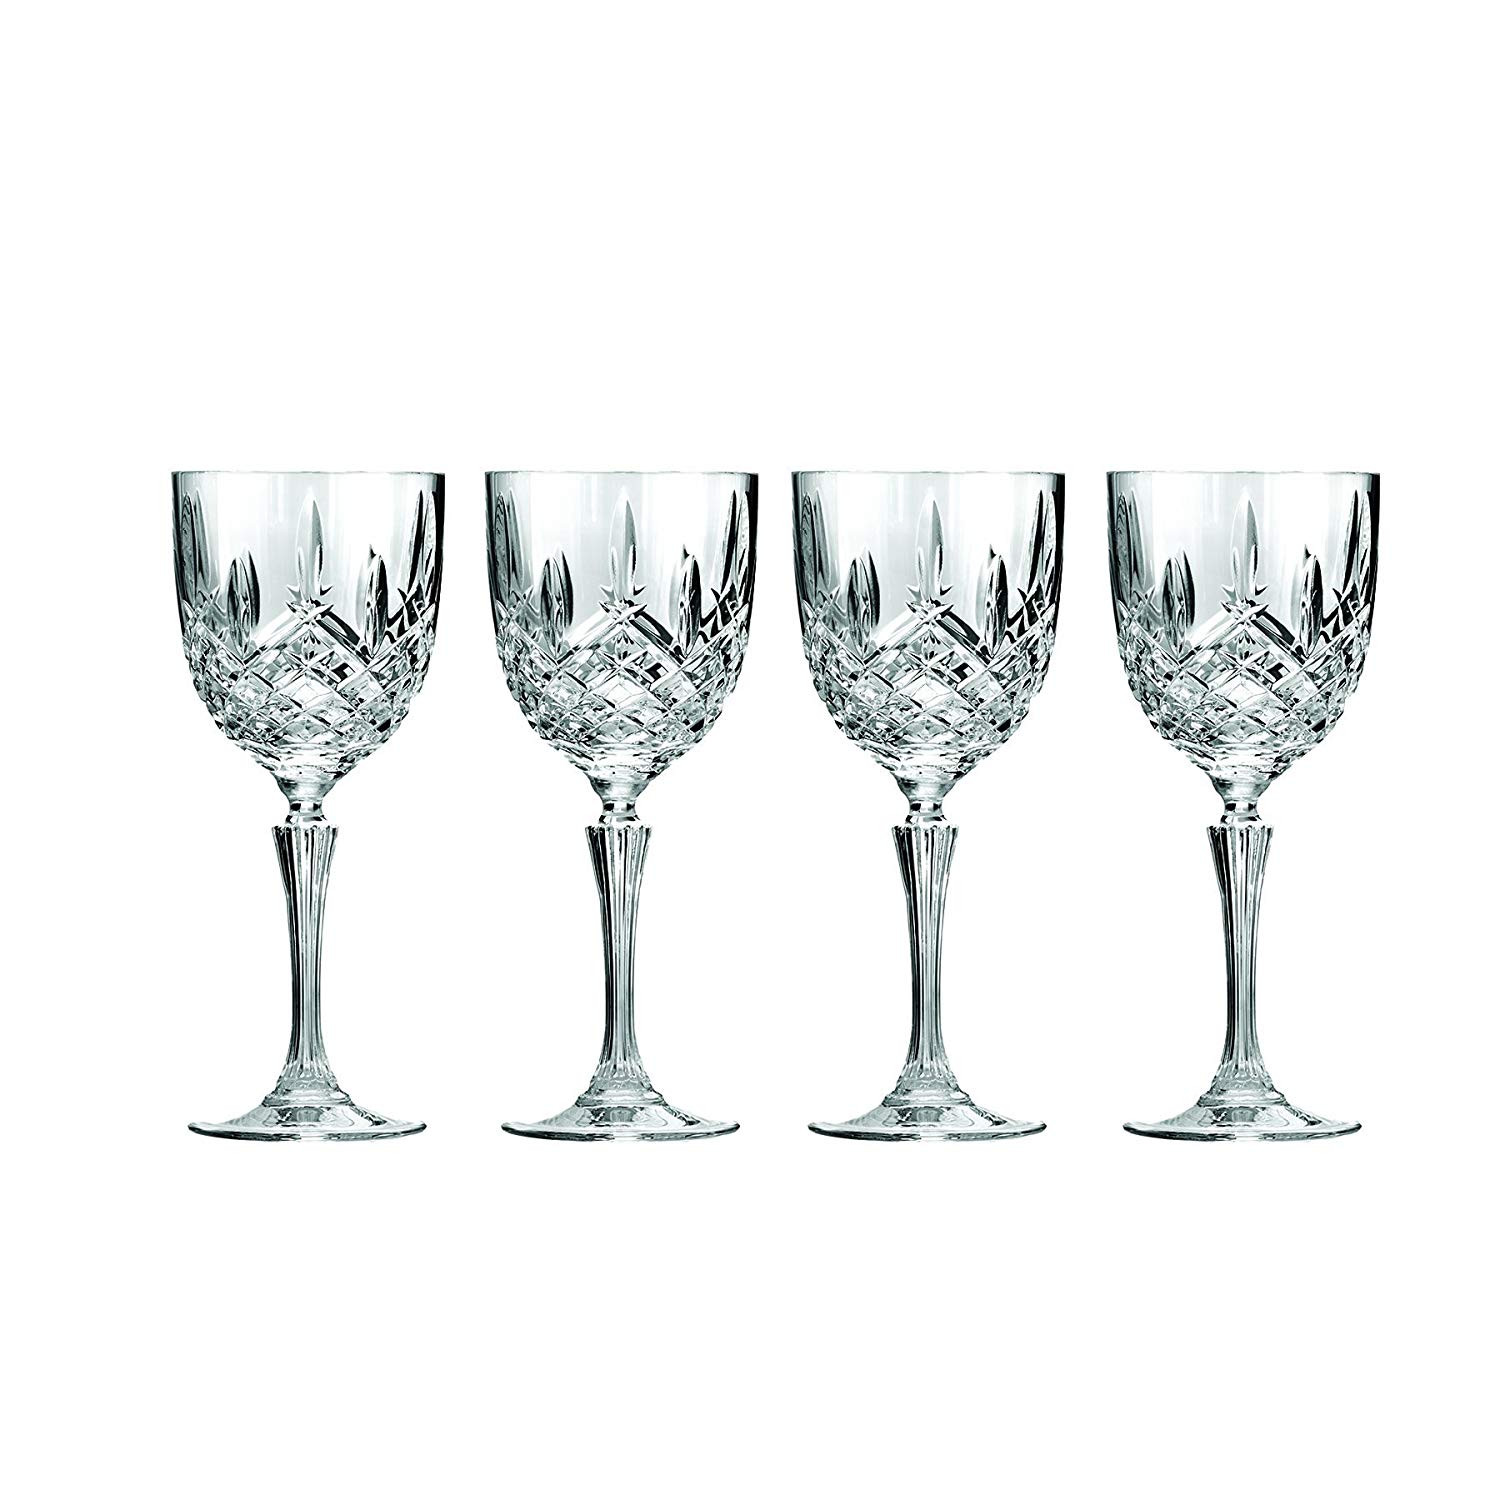 waterford markham vase of amazon com set of 4 marquis by waterford markham wine glasses inside amazon com set of 4 marquis by waterford markham wine glasses beautifully designed short stem wine glasses premium crystal red and white wine